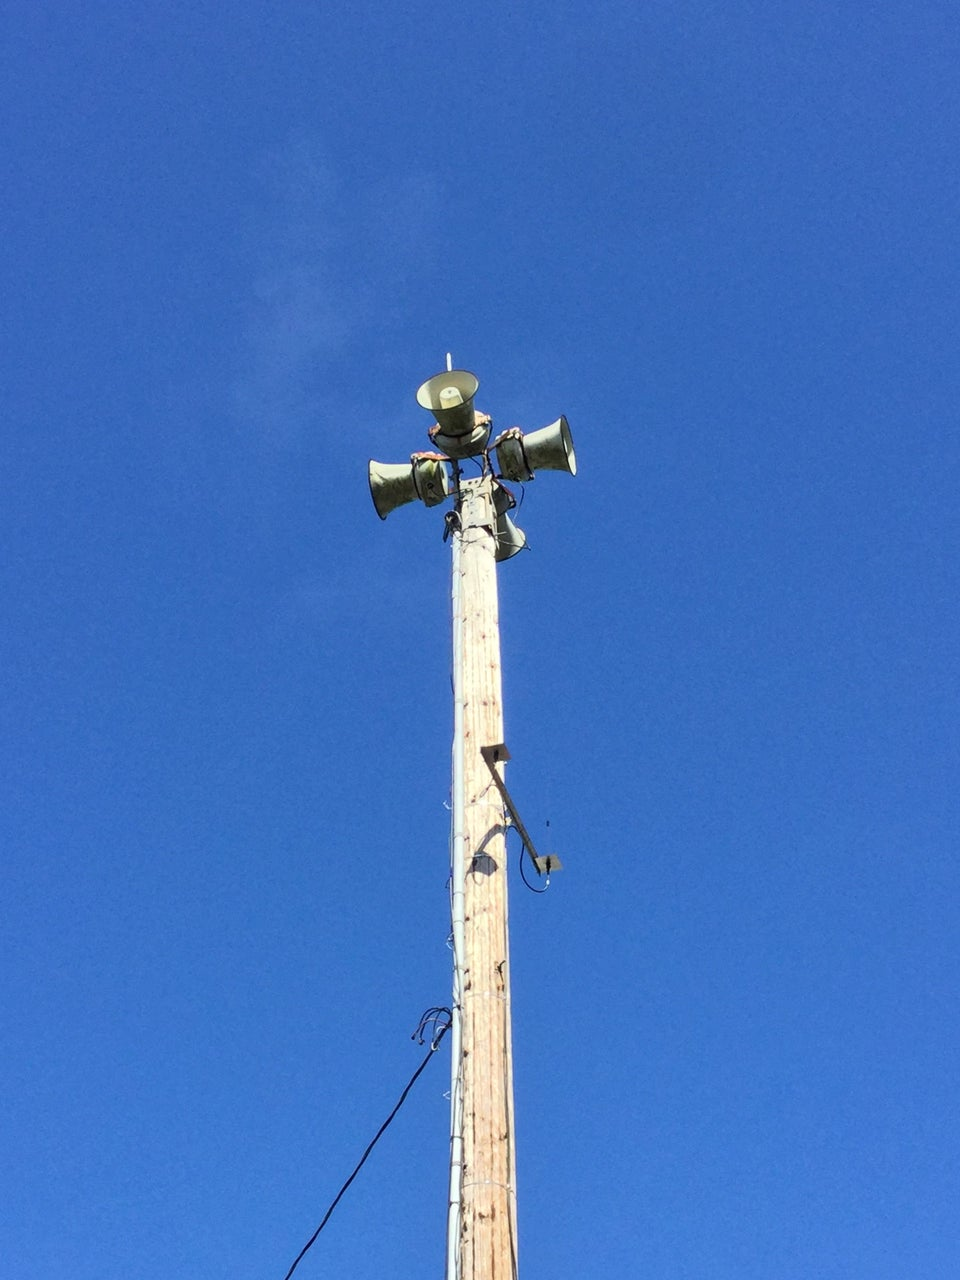 Old air raid sirens on a tower in front of blue skies.